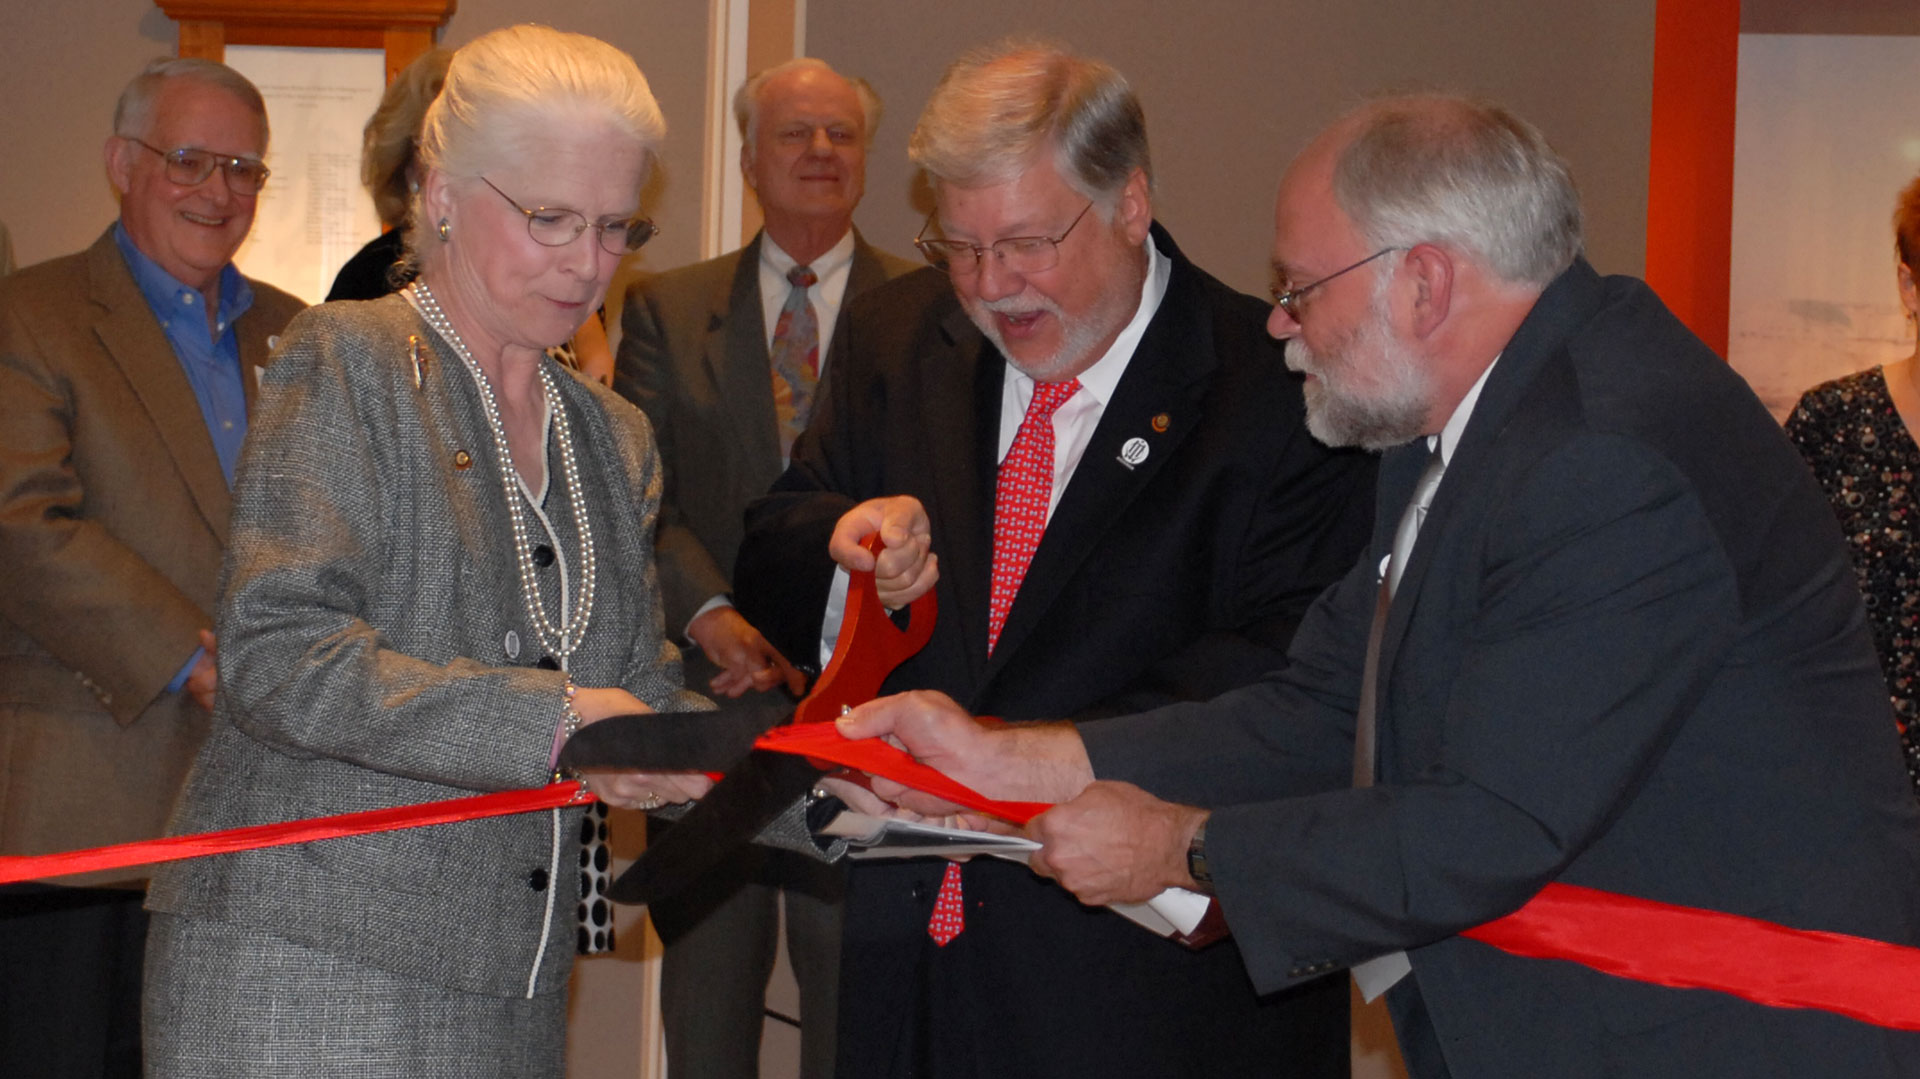 donors and Museum director cut red ribbon with large scissors